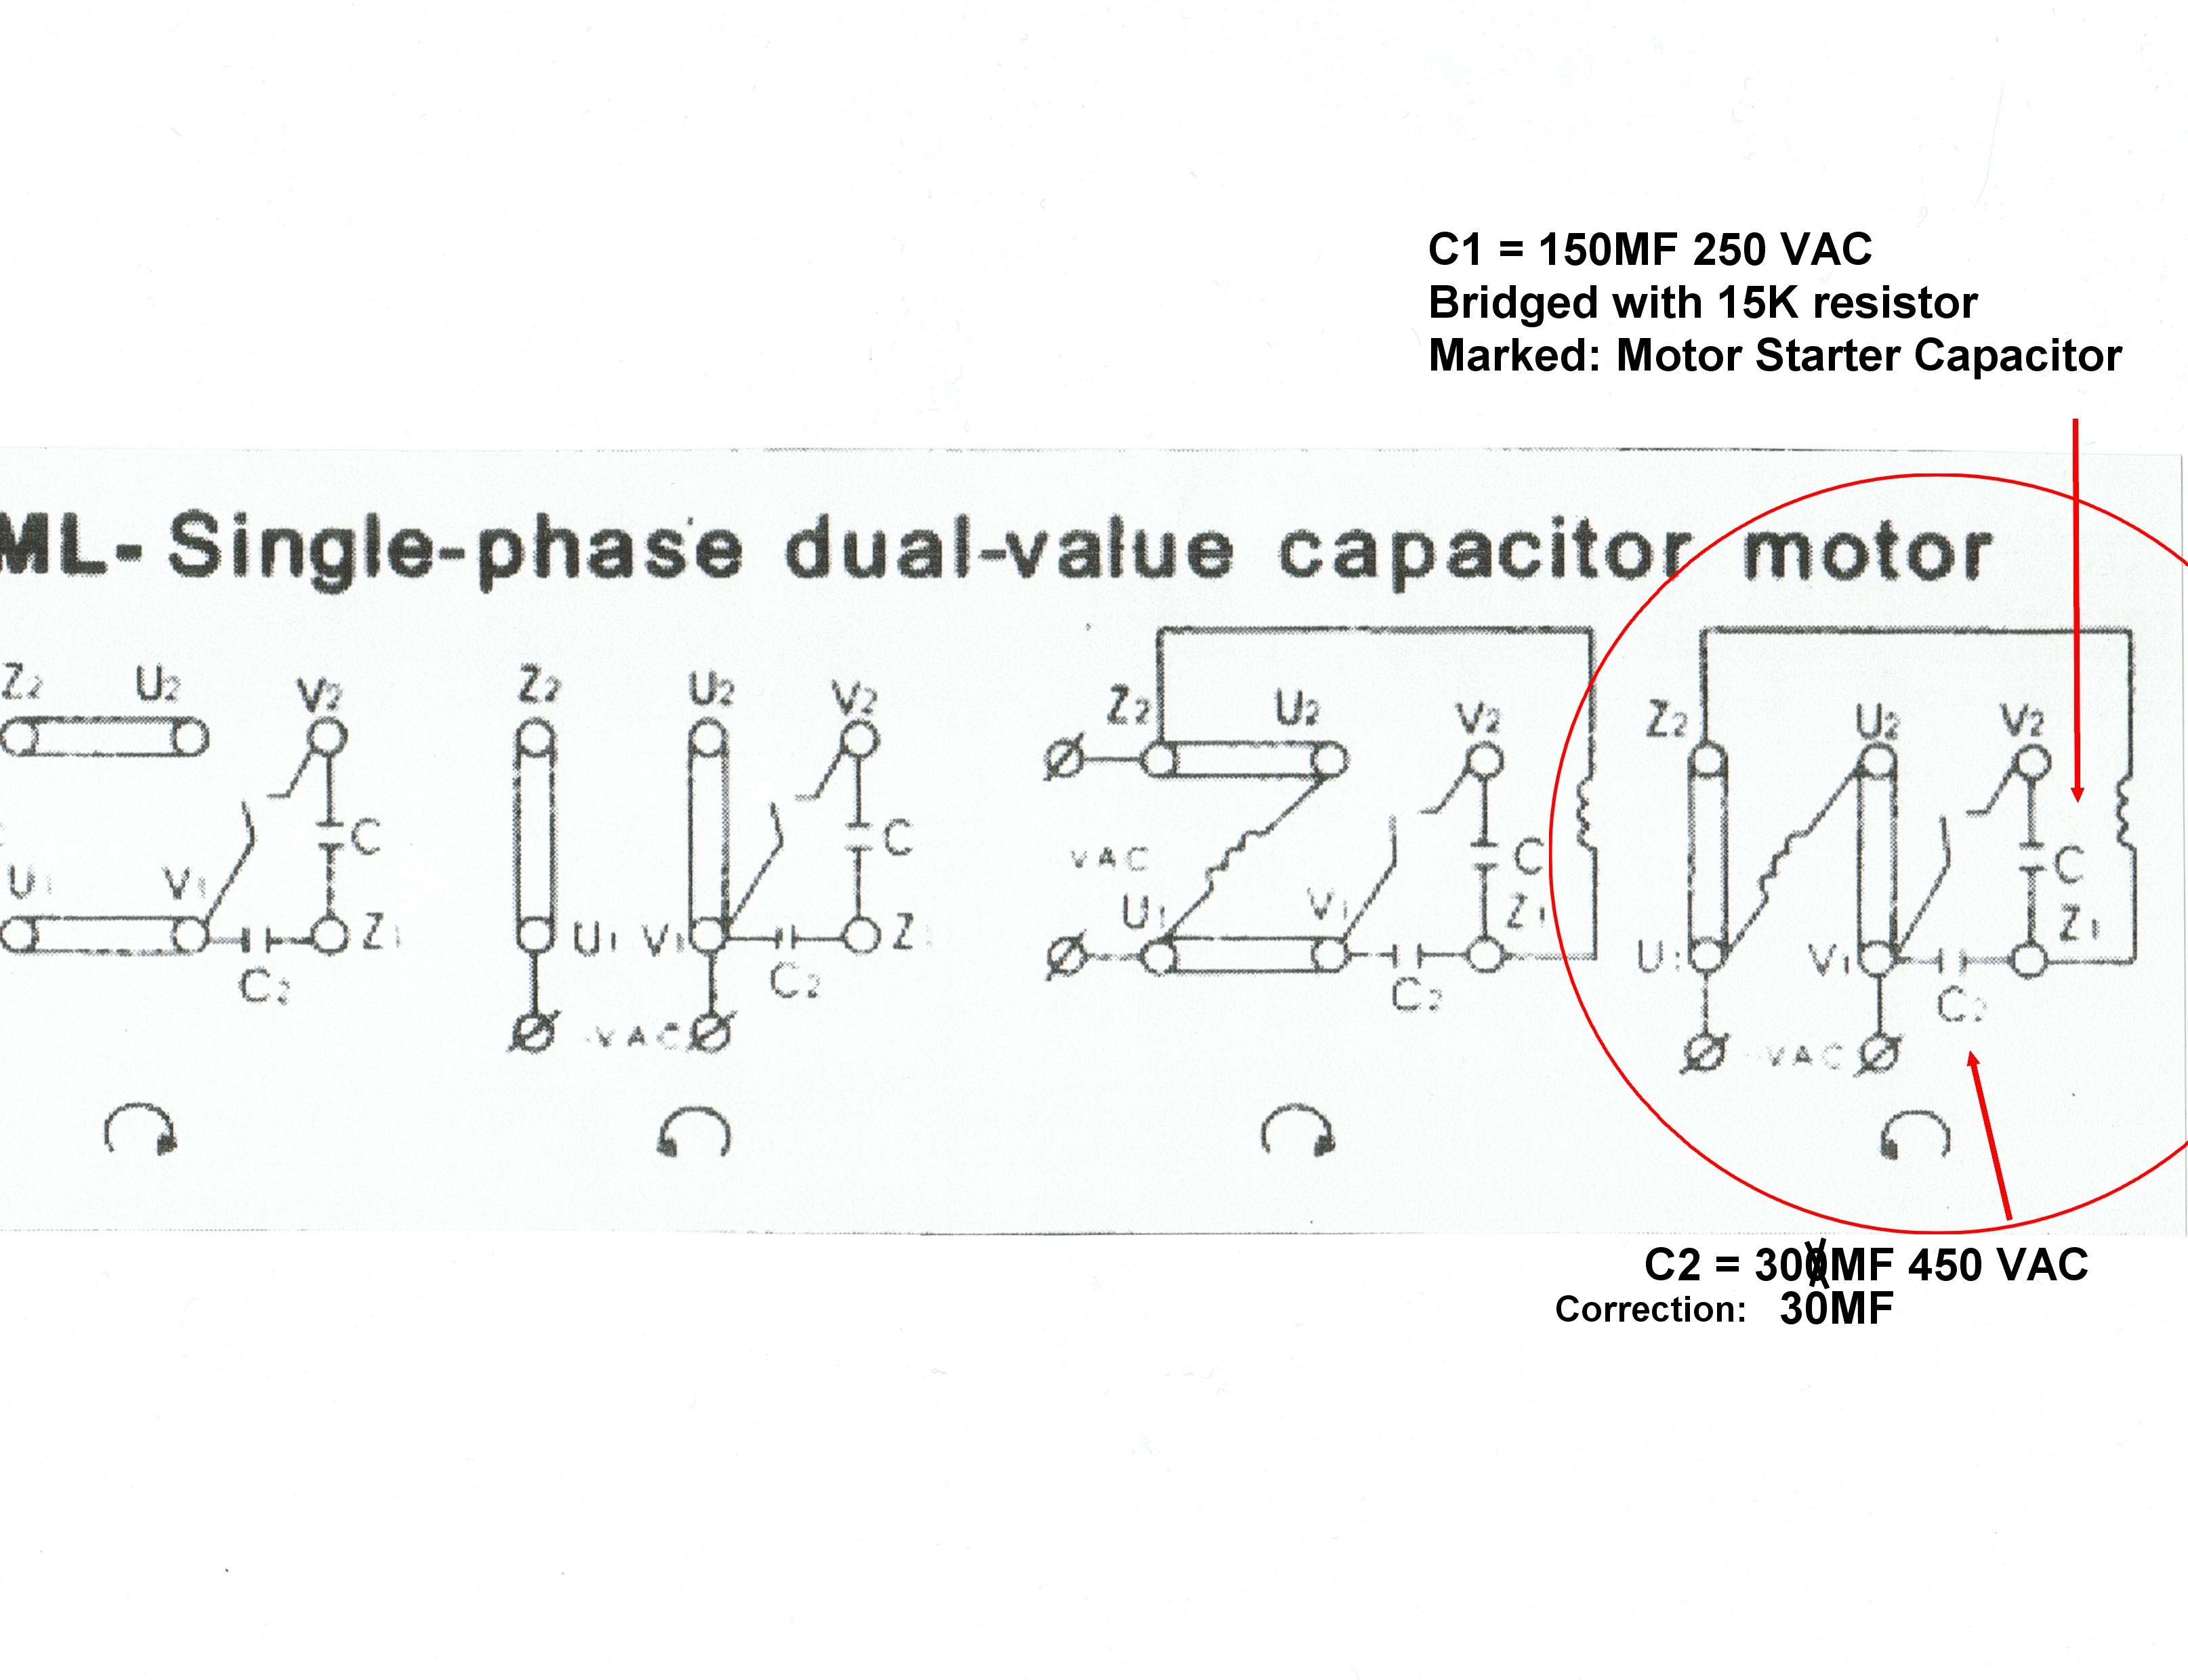 220v single phase plug wiring diagram 98 jeep grand cherokee laredo radio 380v 3 get free image about